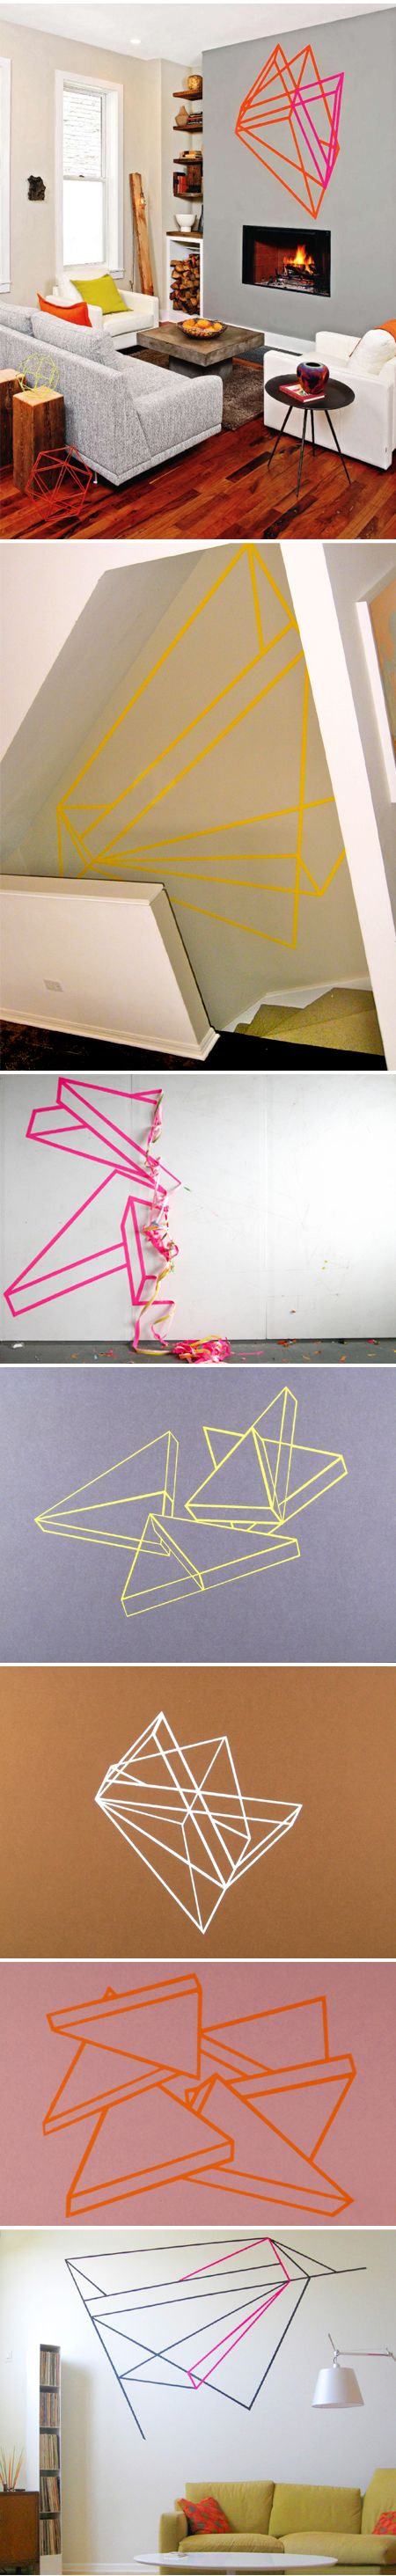 tape art by Alex Menocal. so cool and smart!(would it be very horrible to do something like this on my art-needing walls? a poor man's copy cat... i wouldn't take any credit for the brilliance...)